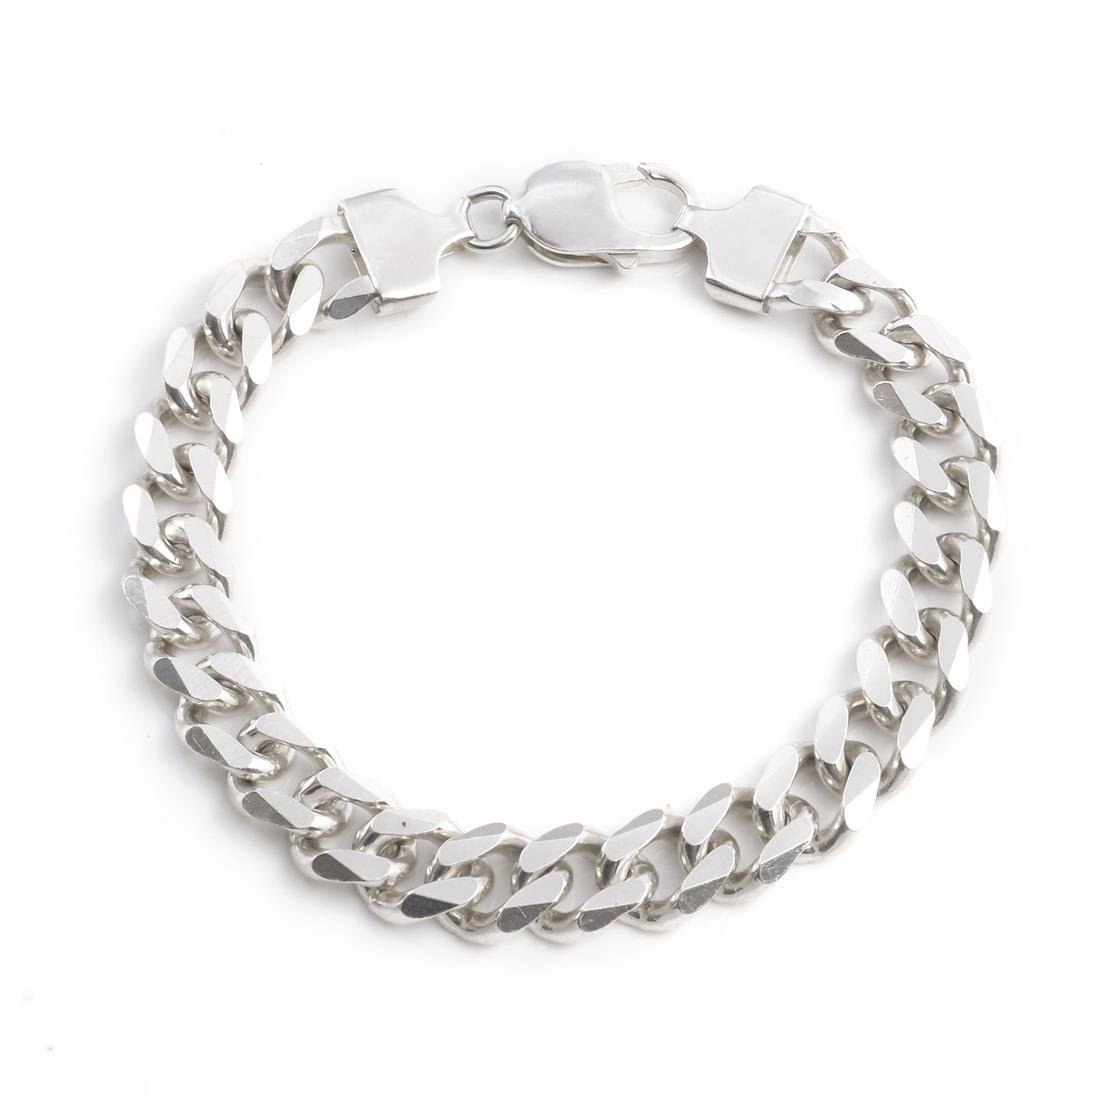 Silverly Men's .925 Sterling Silver 10 mm Solid Heavy Strong Curb Chain Bracelet, 21.5 cm 01spSSB007